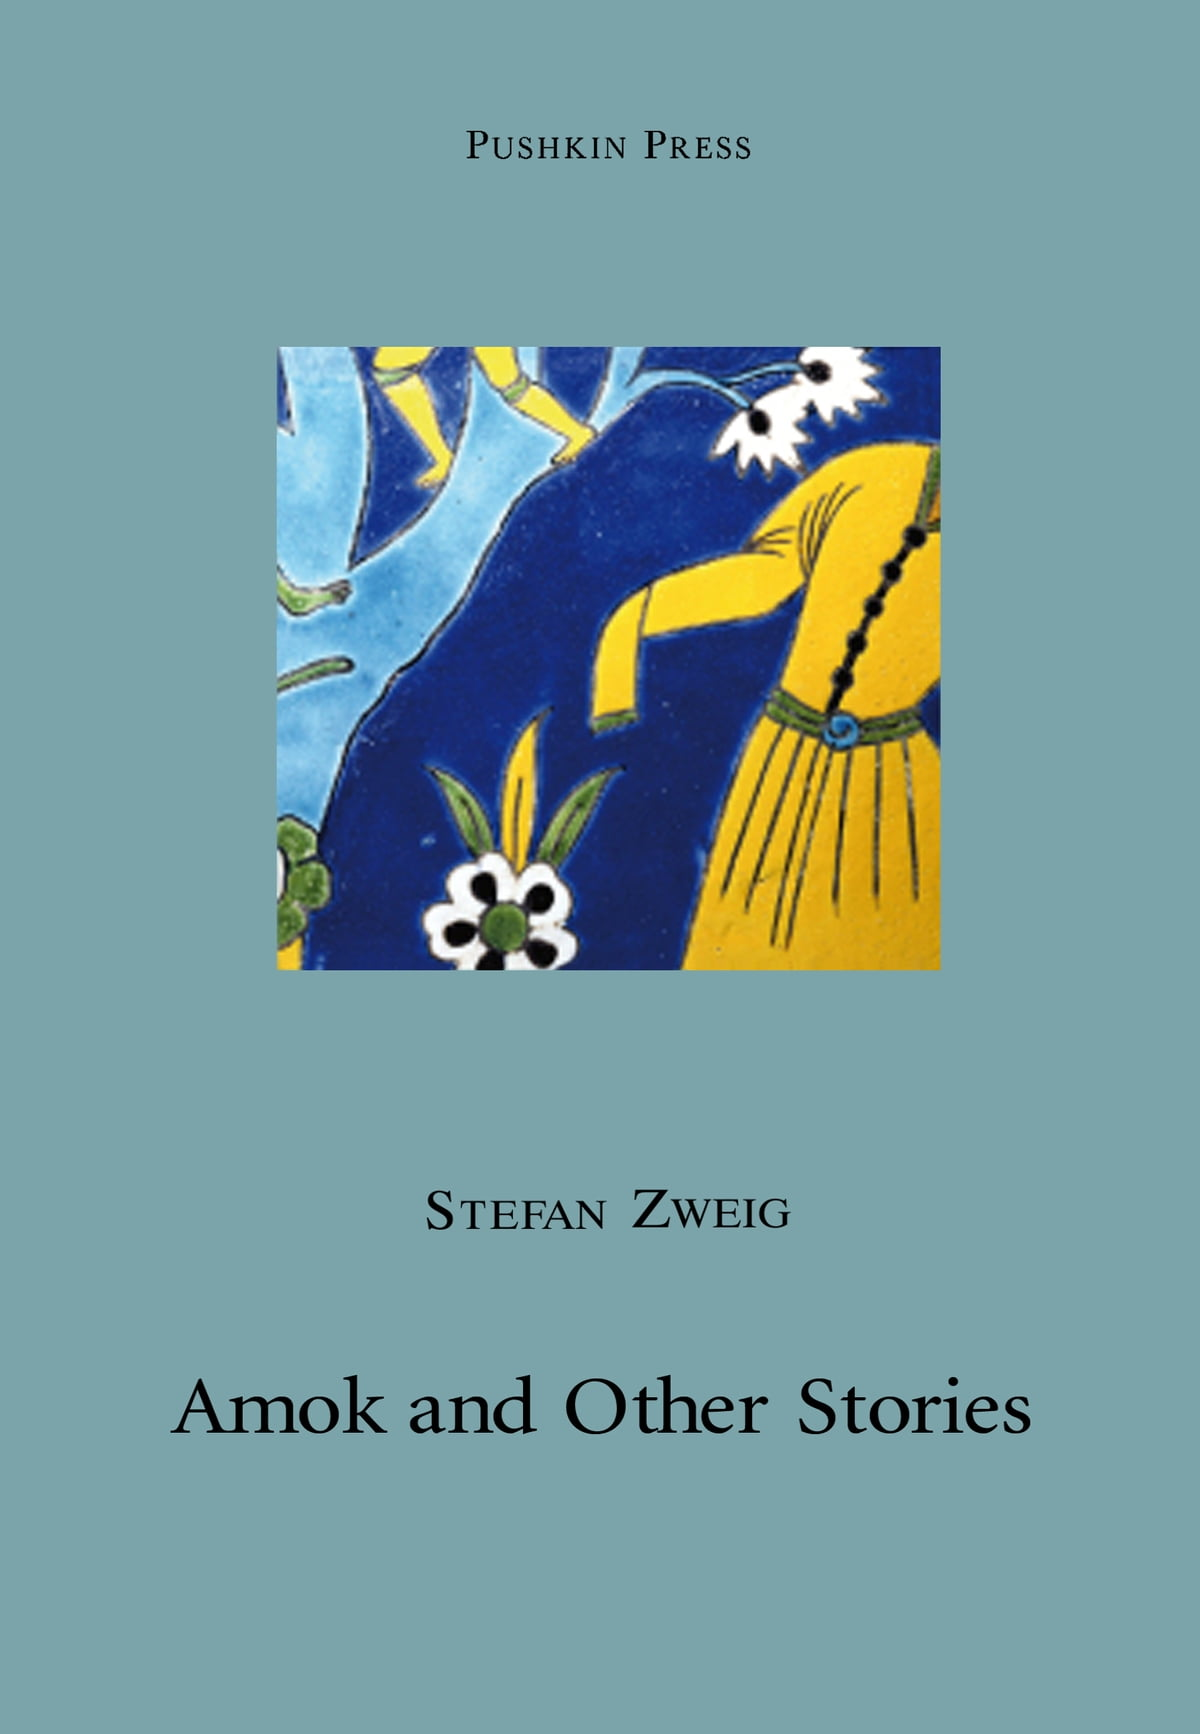 Amok Libro Amok And Other Stories Ebook By Stefan Zweig Rakuten Kobo